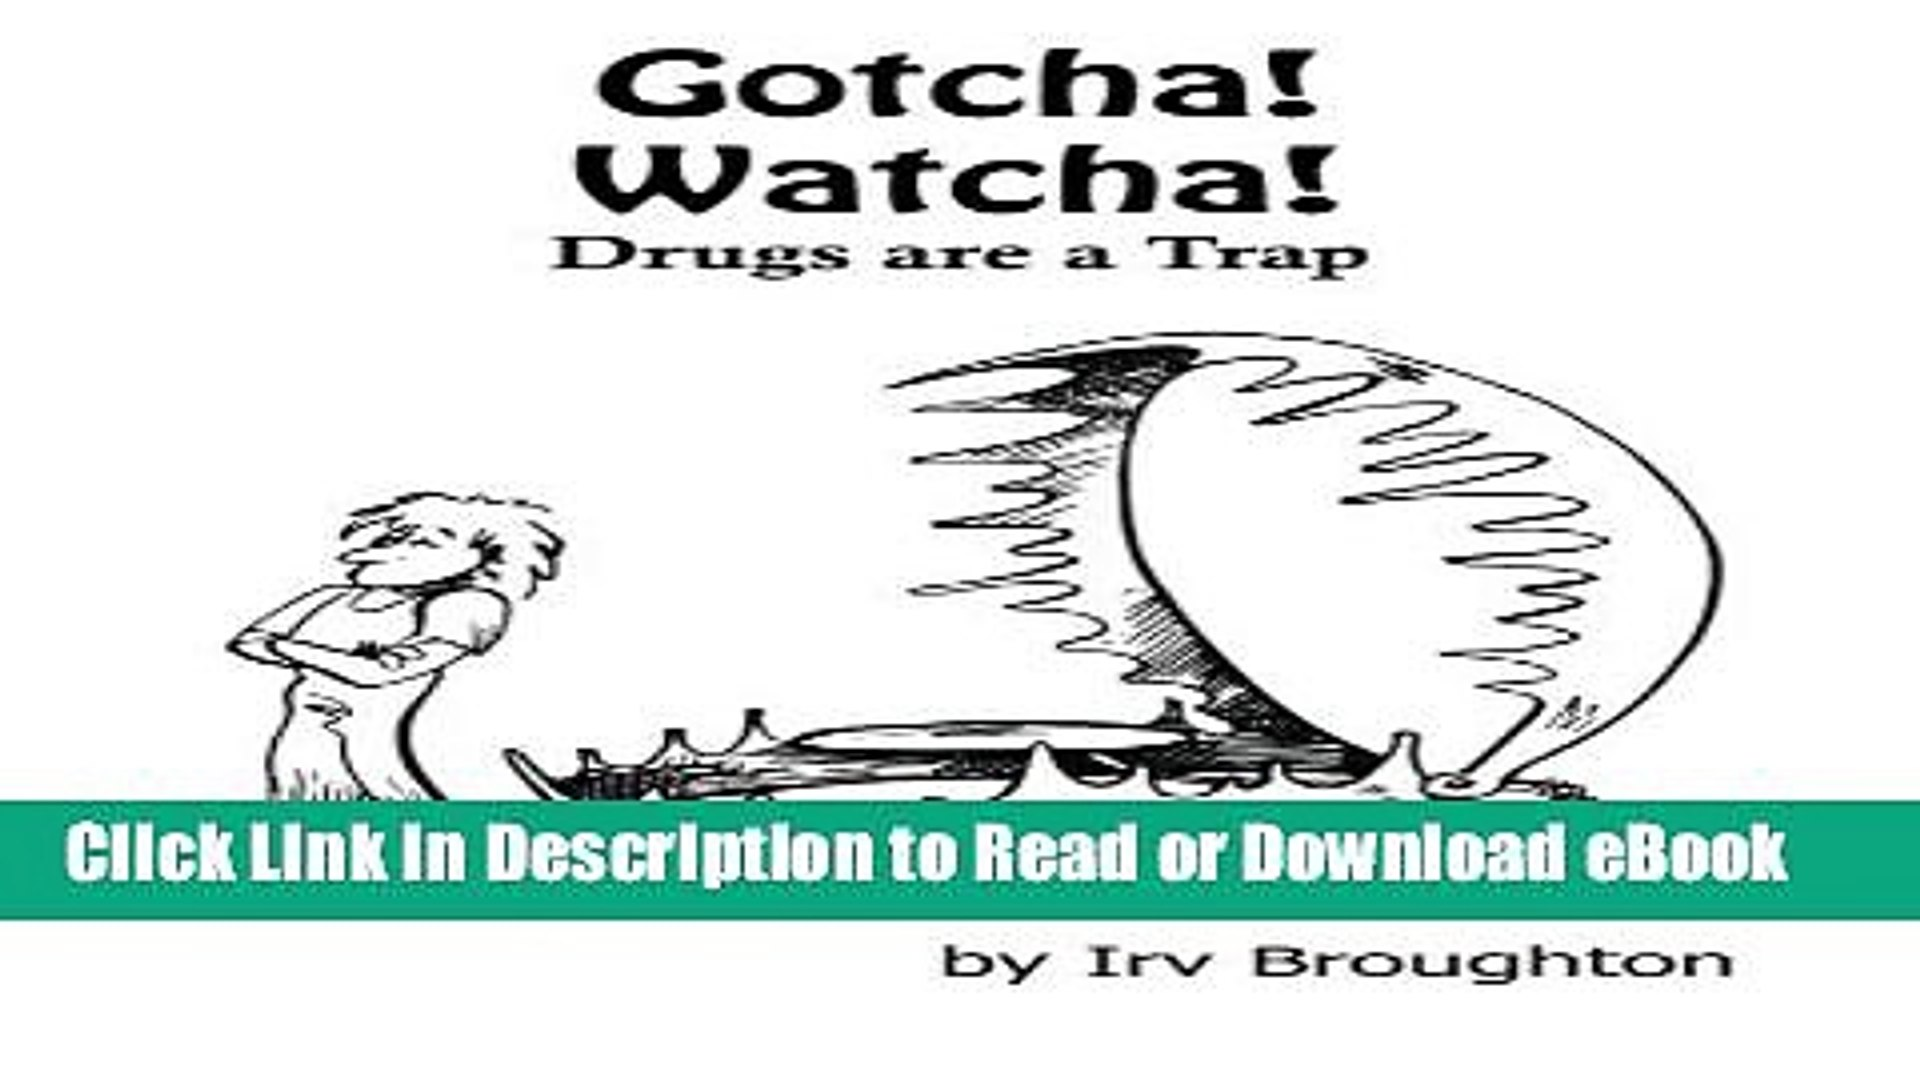 [PDF] Gotcha! Watcha! Drugs are a Trap: Poems about Drugs and All Kinds of Other Things Popular New